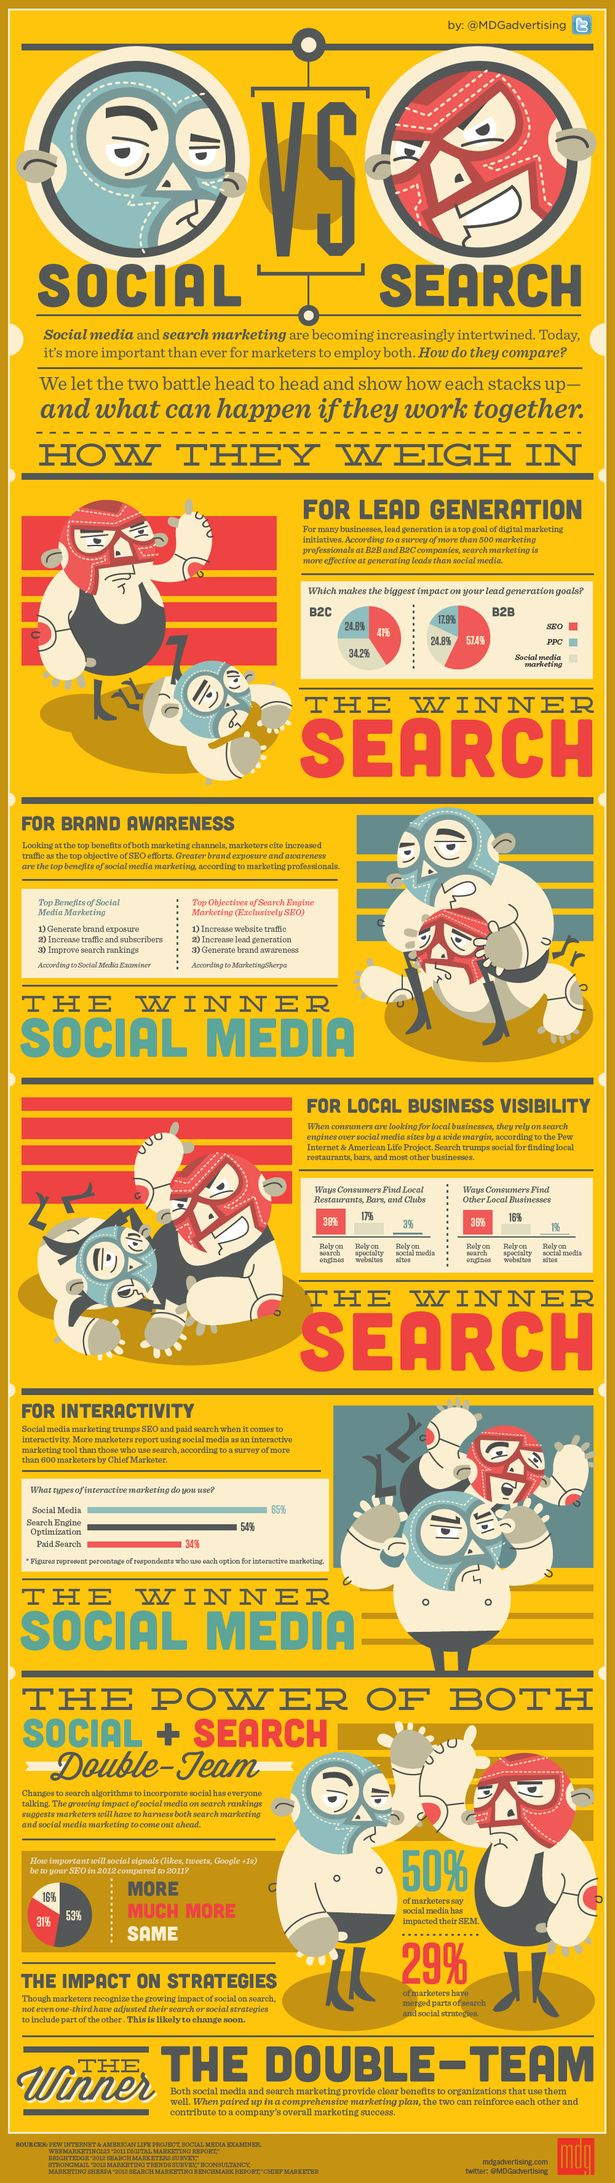 A comprehensive marketing plan includes both social and search.